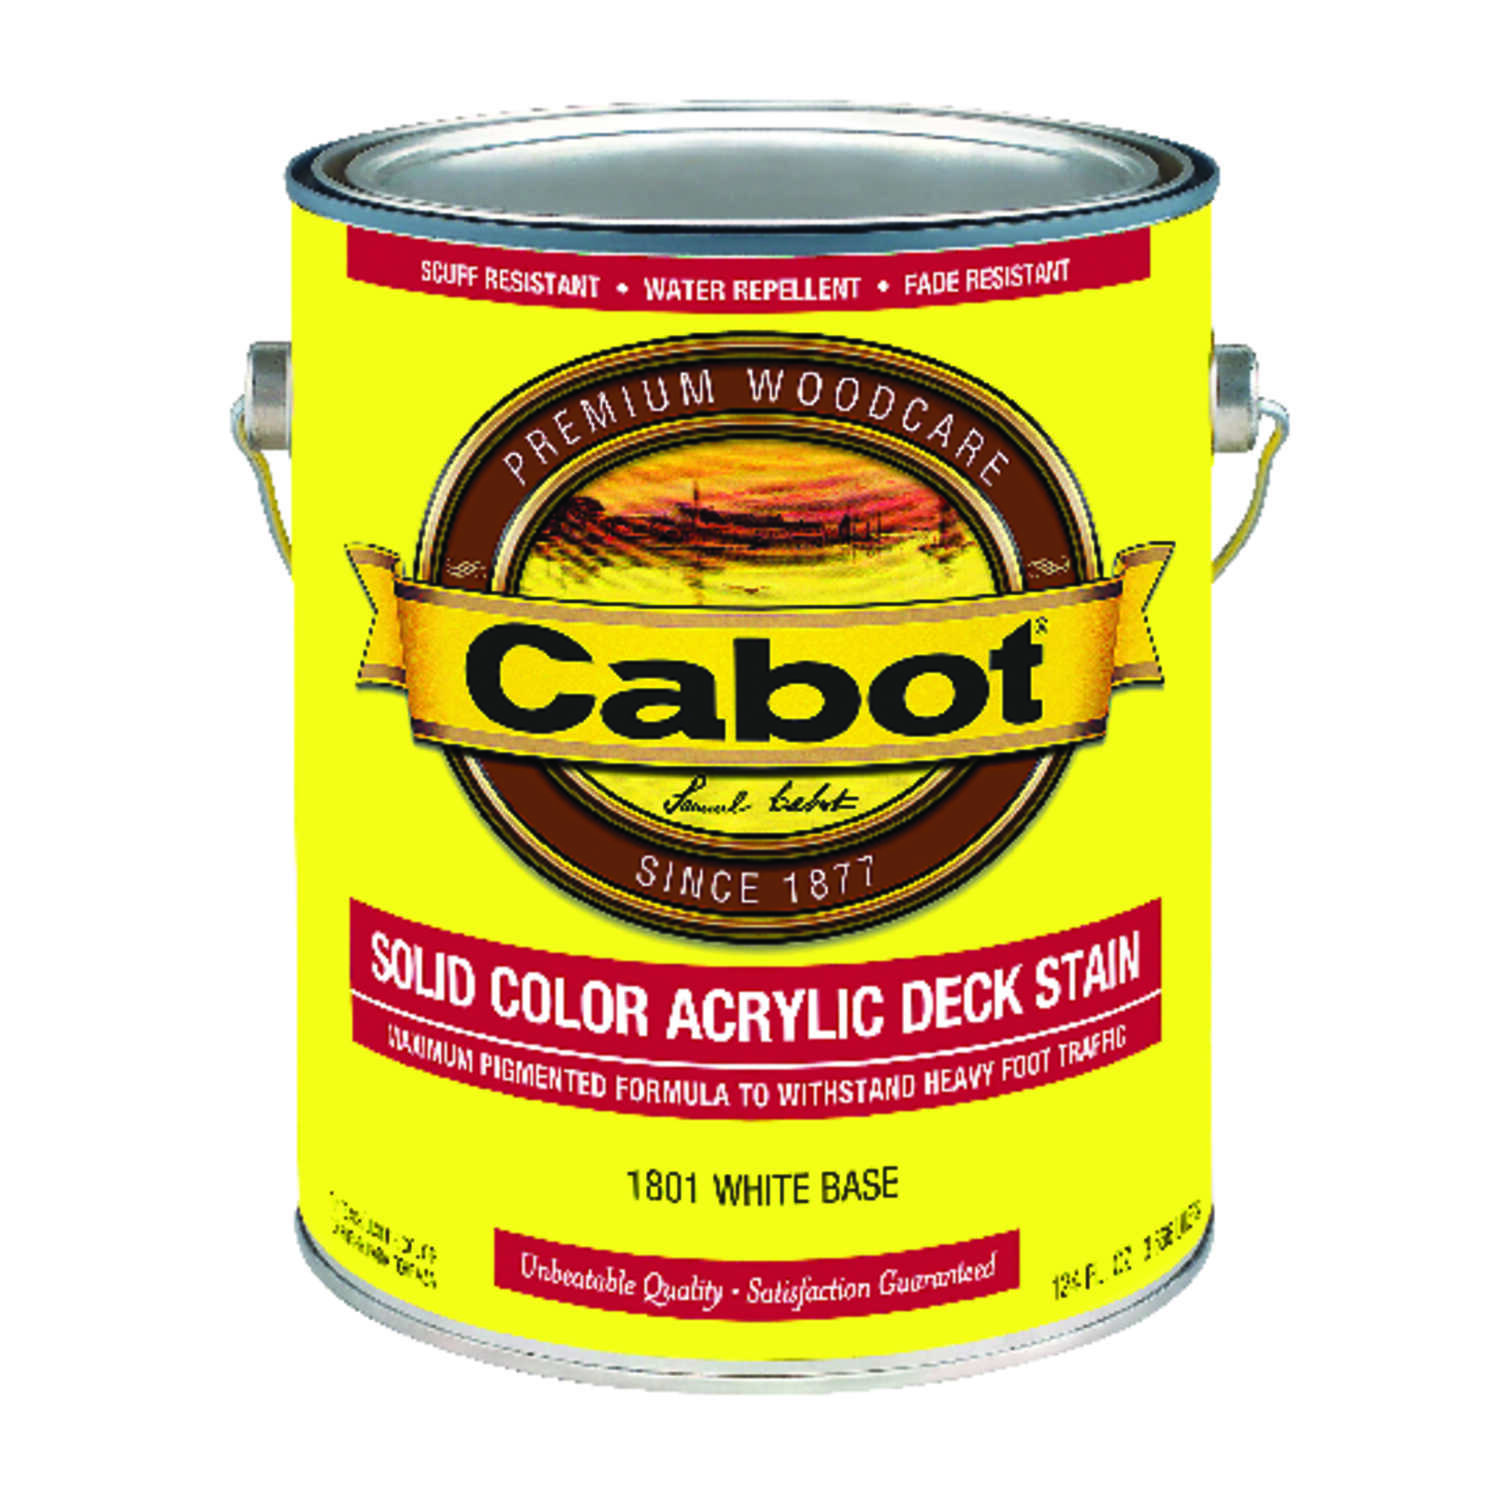 Cabot  Solid  Tintable White Base  Acrylic  Deck Stain  1 gal.